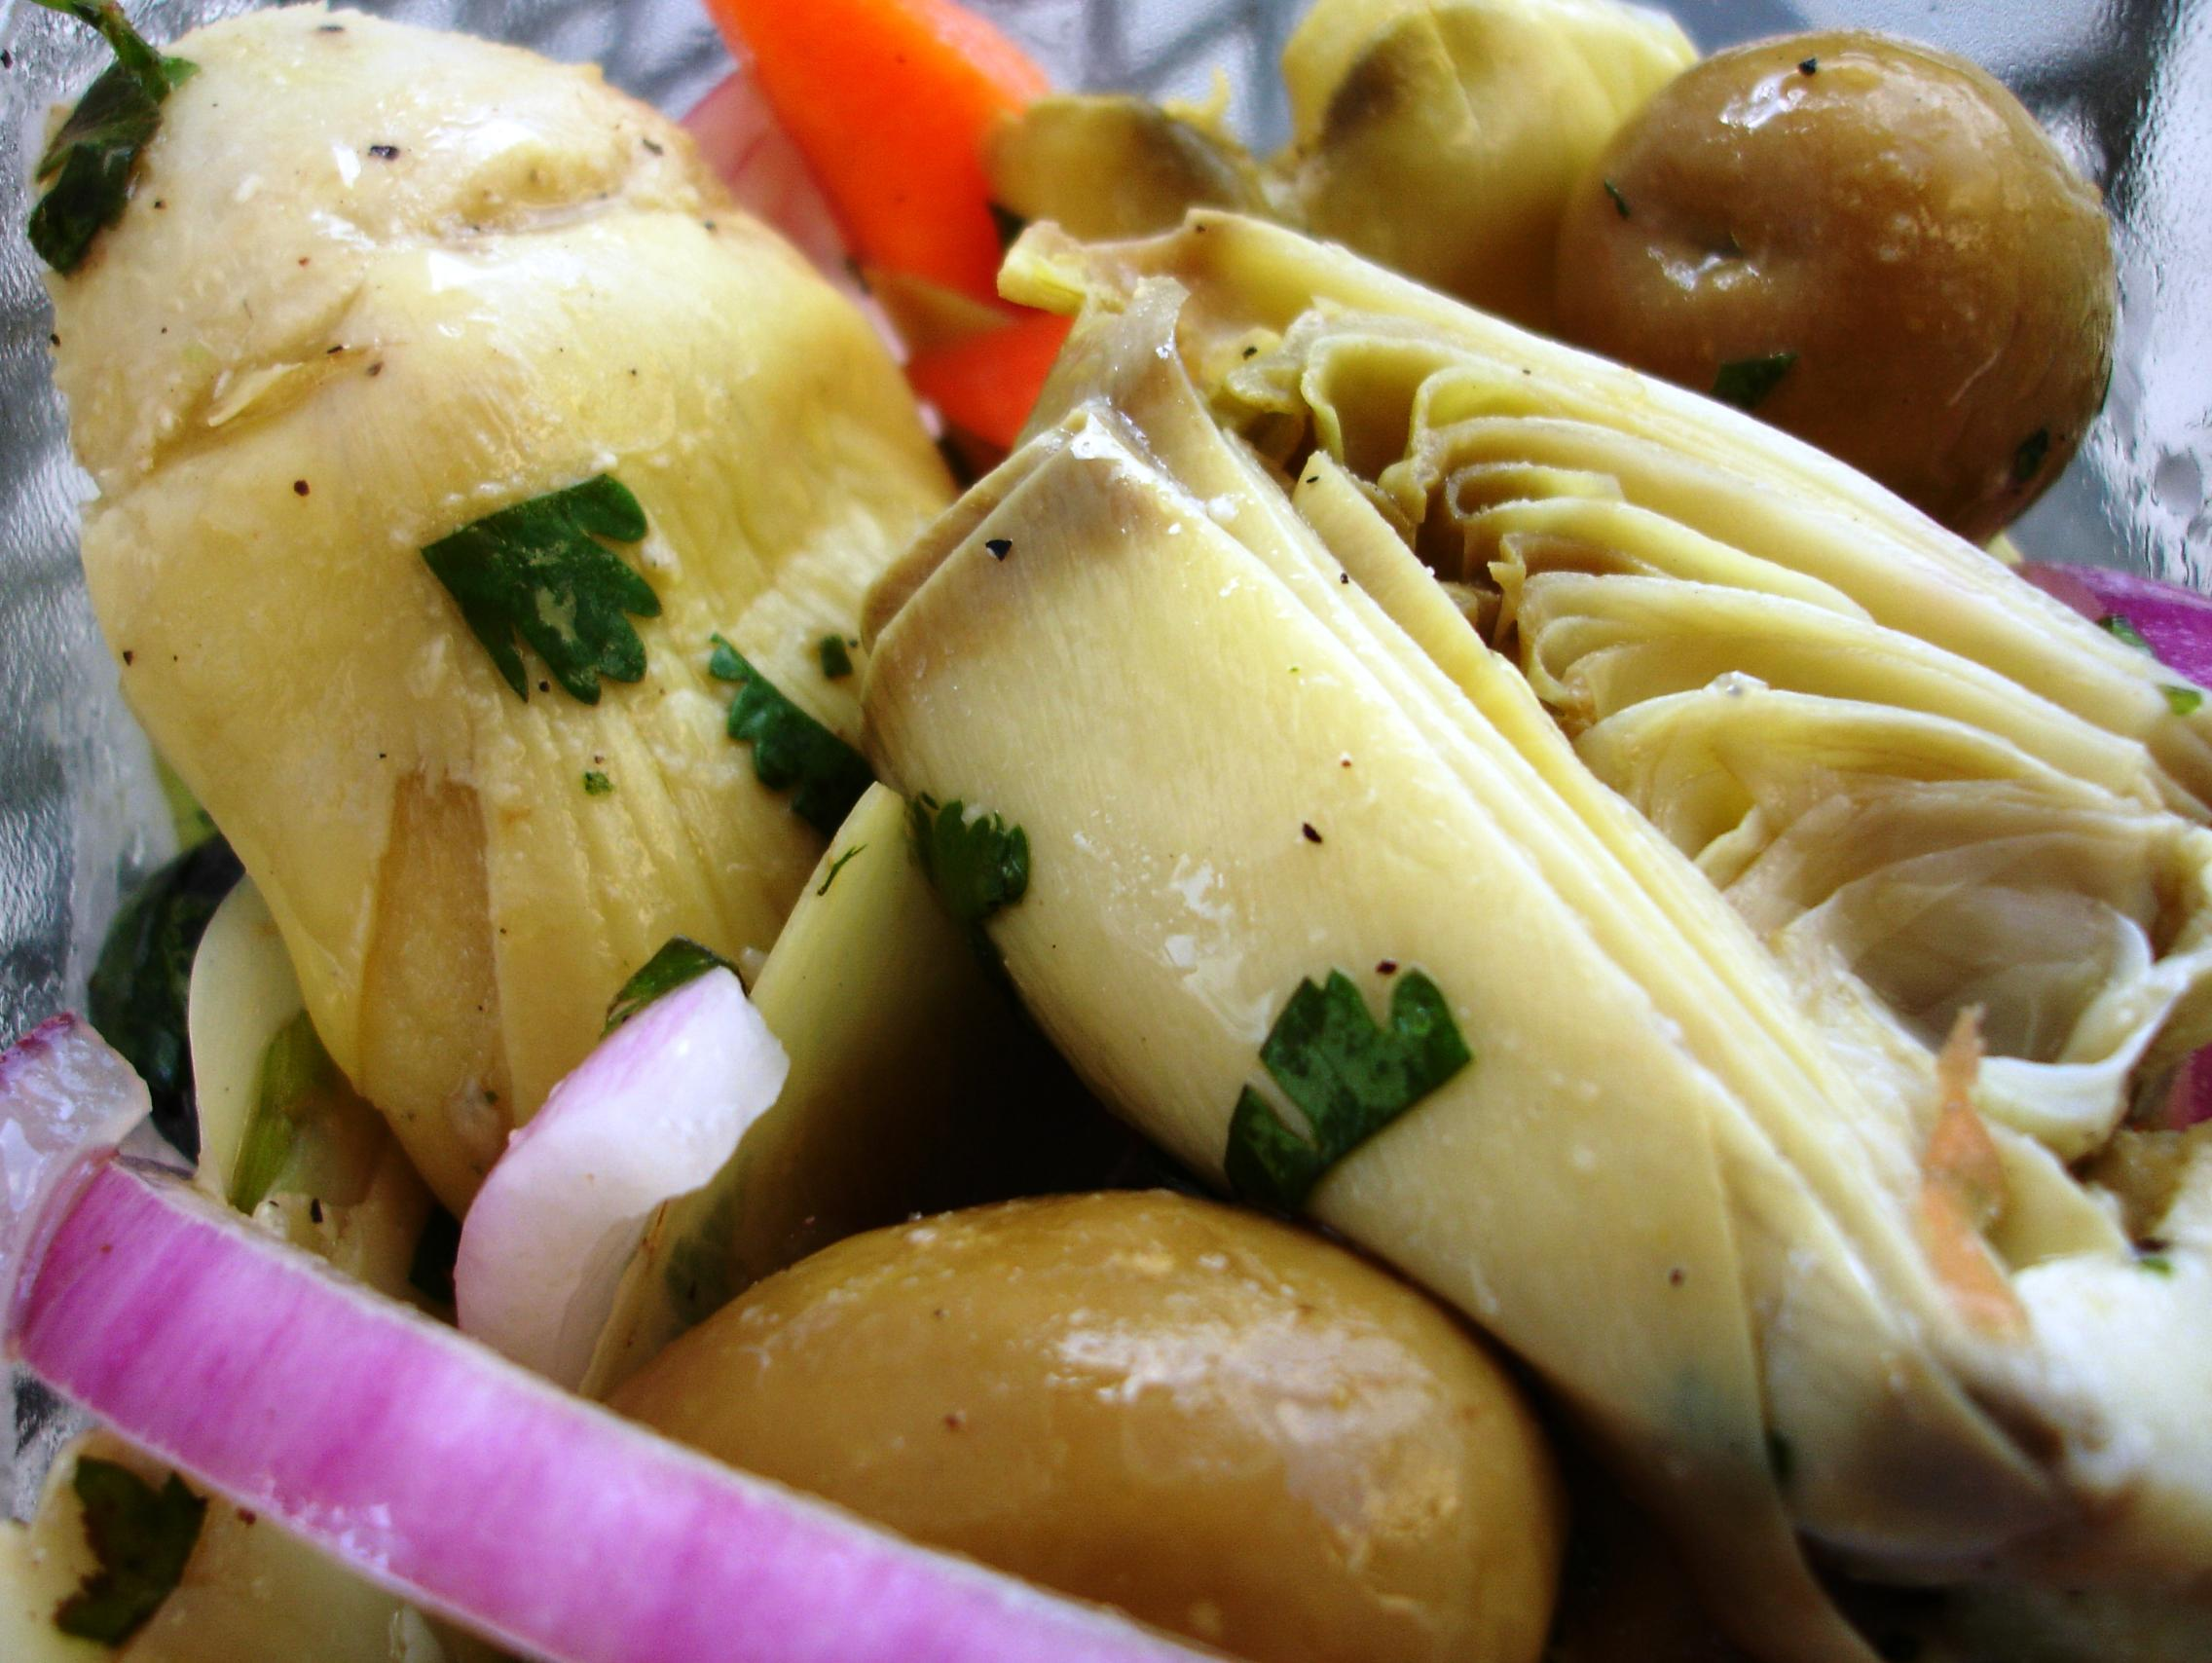 The Mediterranean Artichoke Salad adds green and black olives, carrots, celery, and onion to the artichoke hearts.